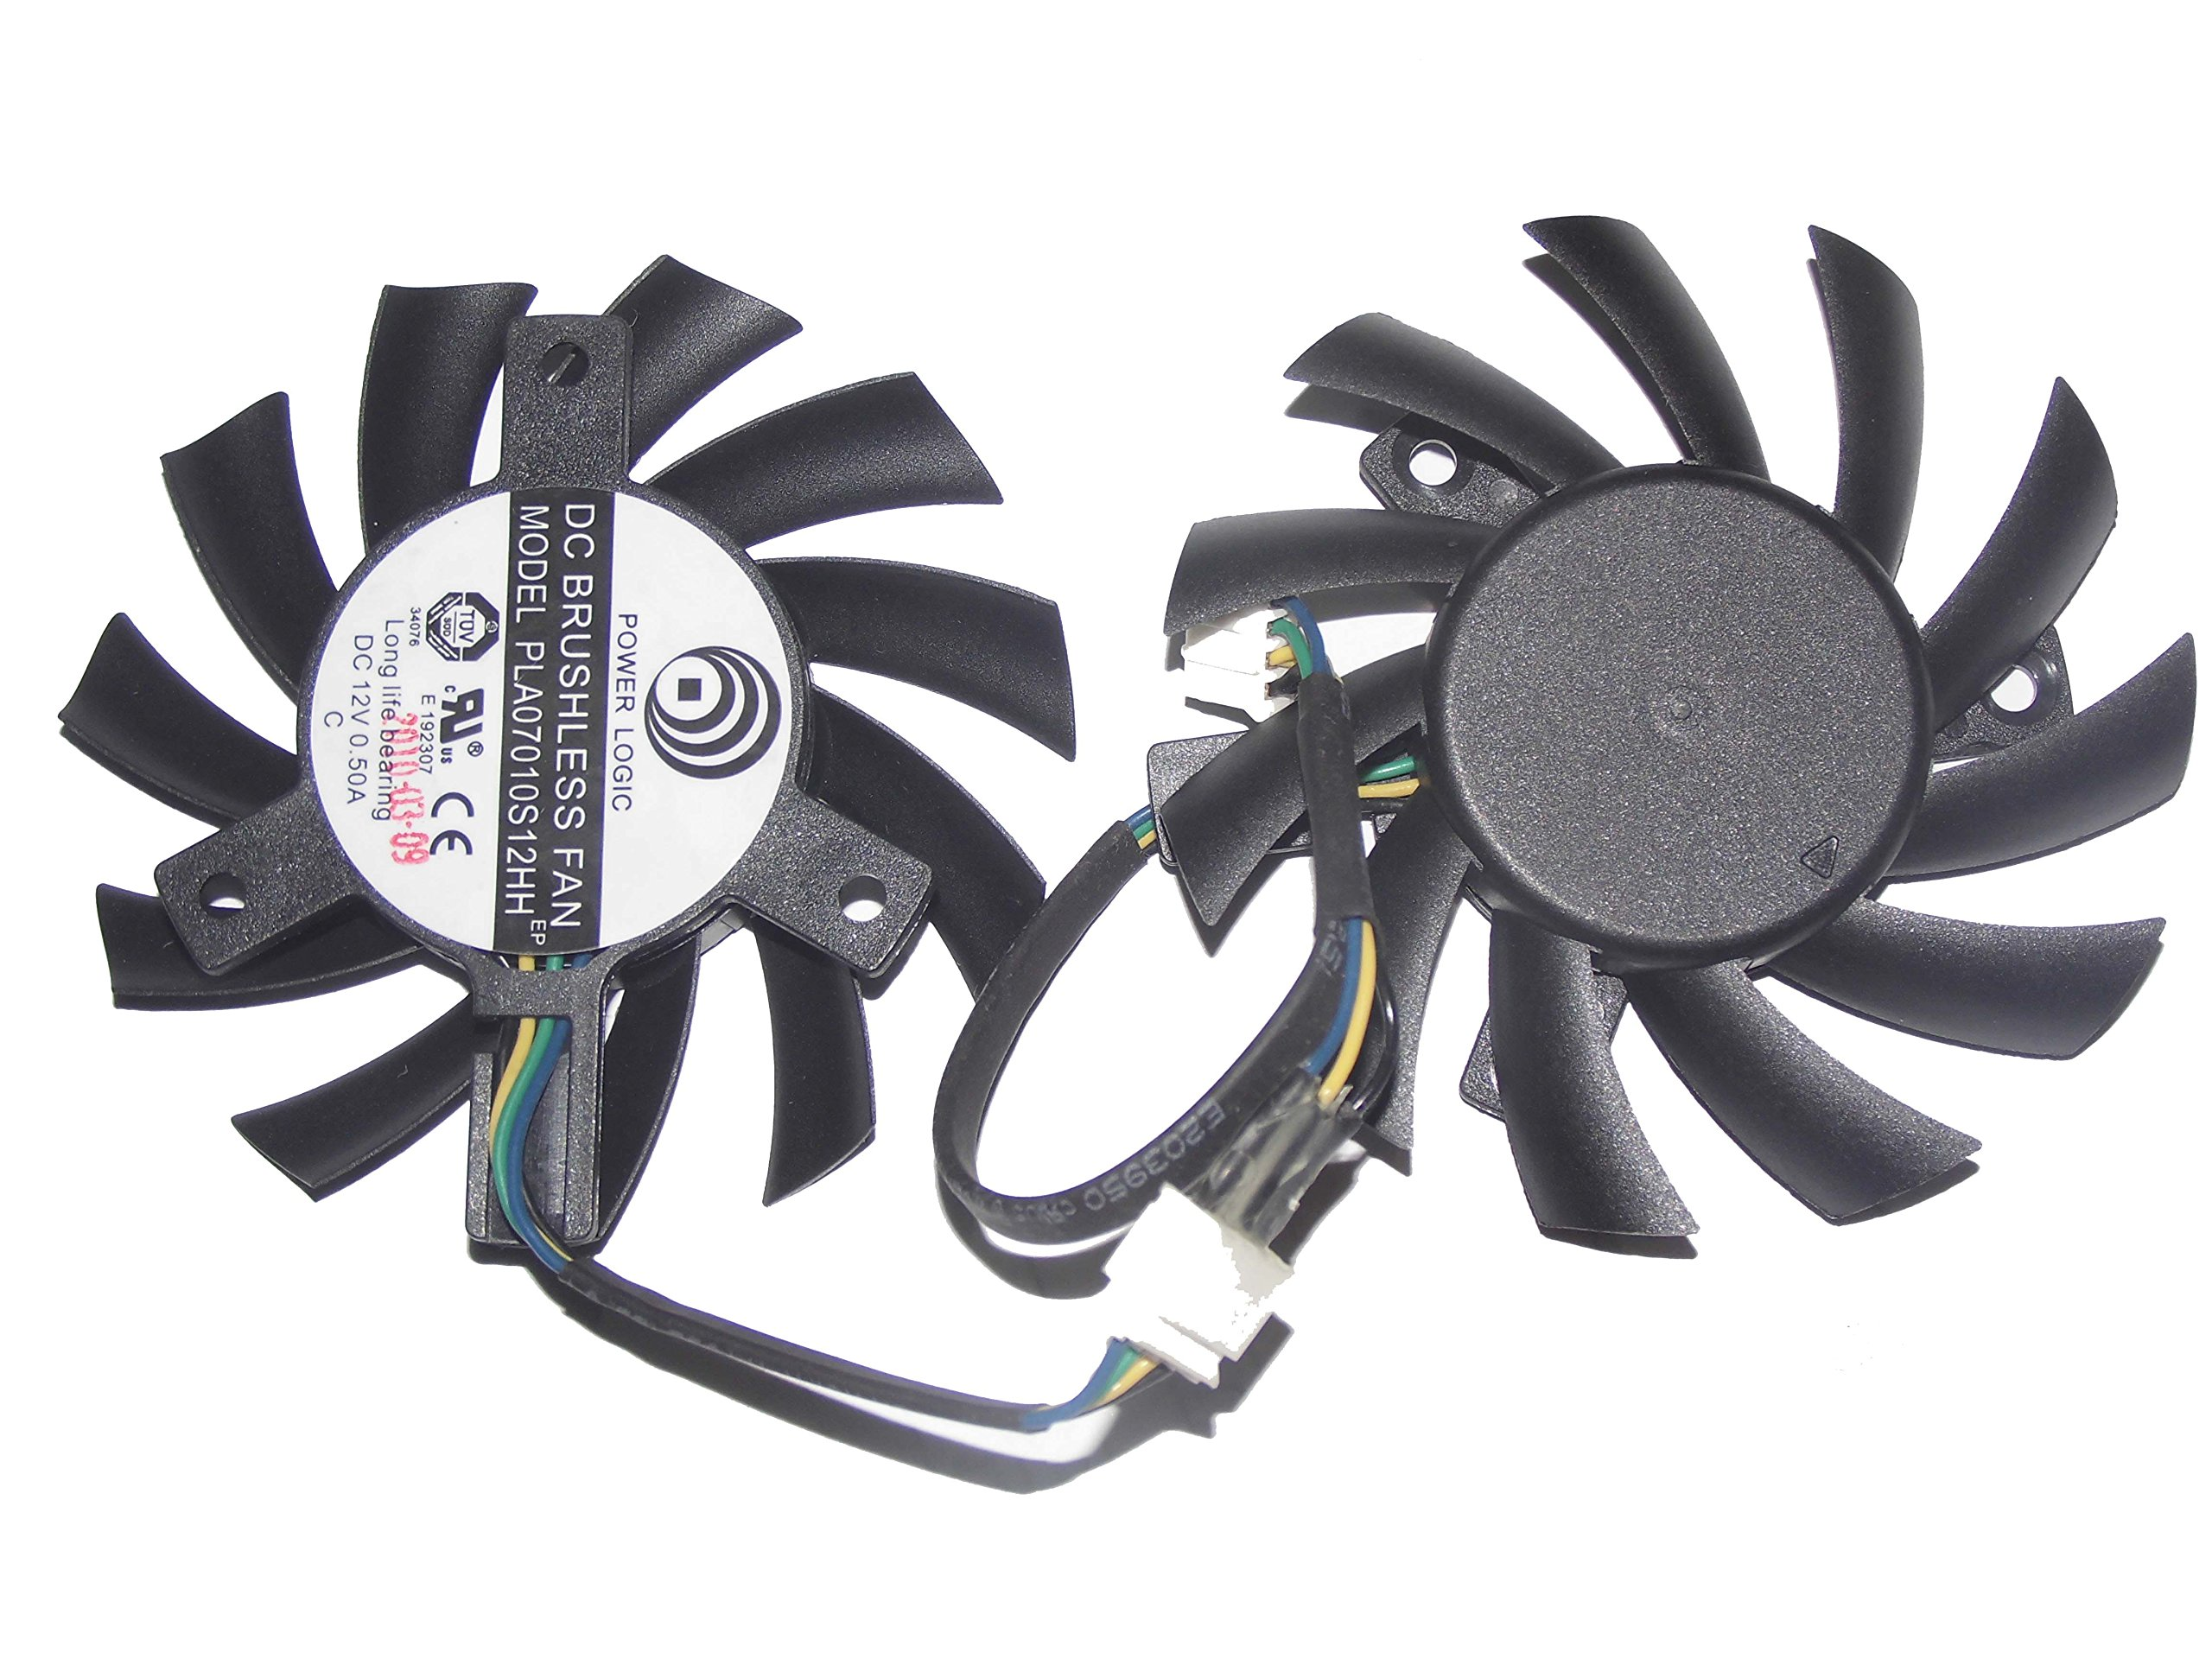 Power Logic PLA07010S12HH 12V 0.5A 4Wire Twin Cooling Fan